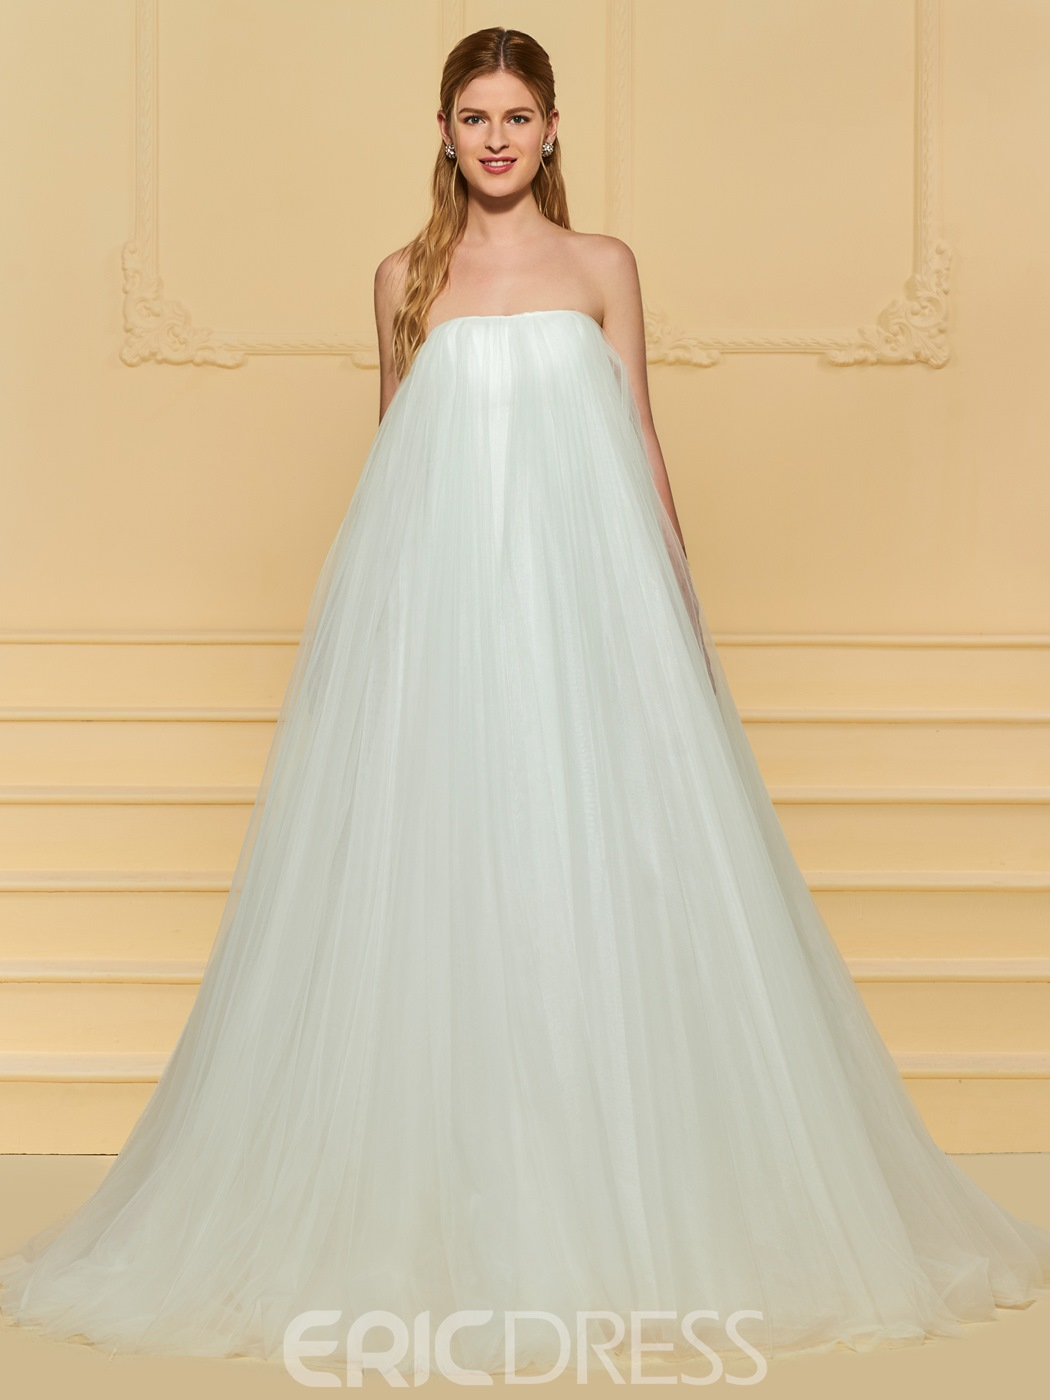 Ericdress strapless tulle a line wedding dress 13172383 ericdress ericdress strapless tulle a line wedding dress junglespirit Images